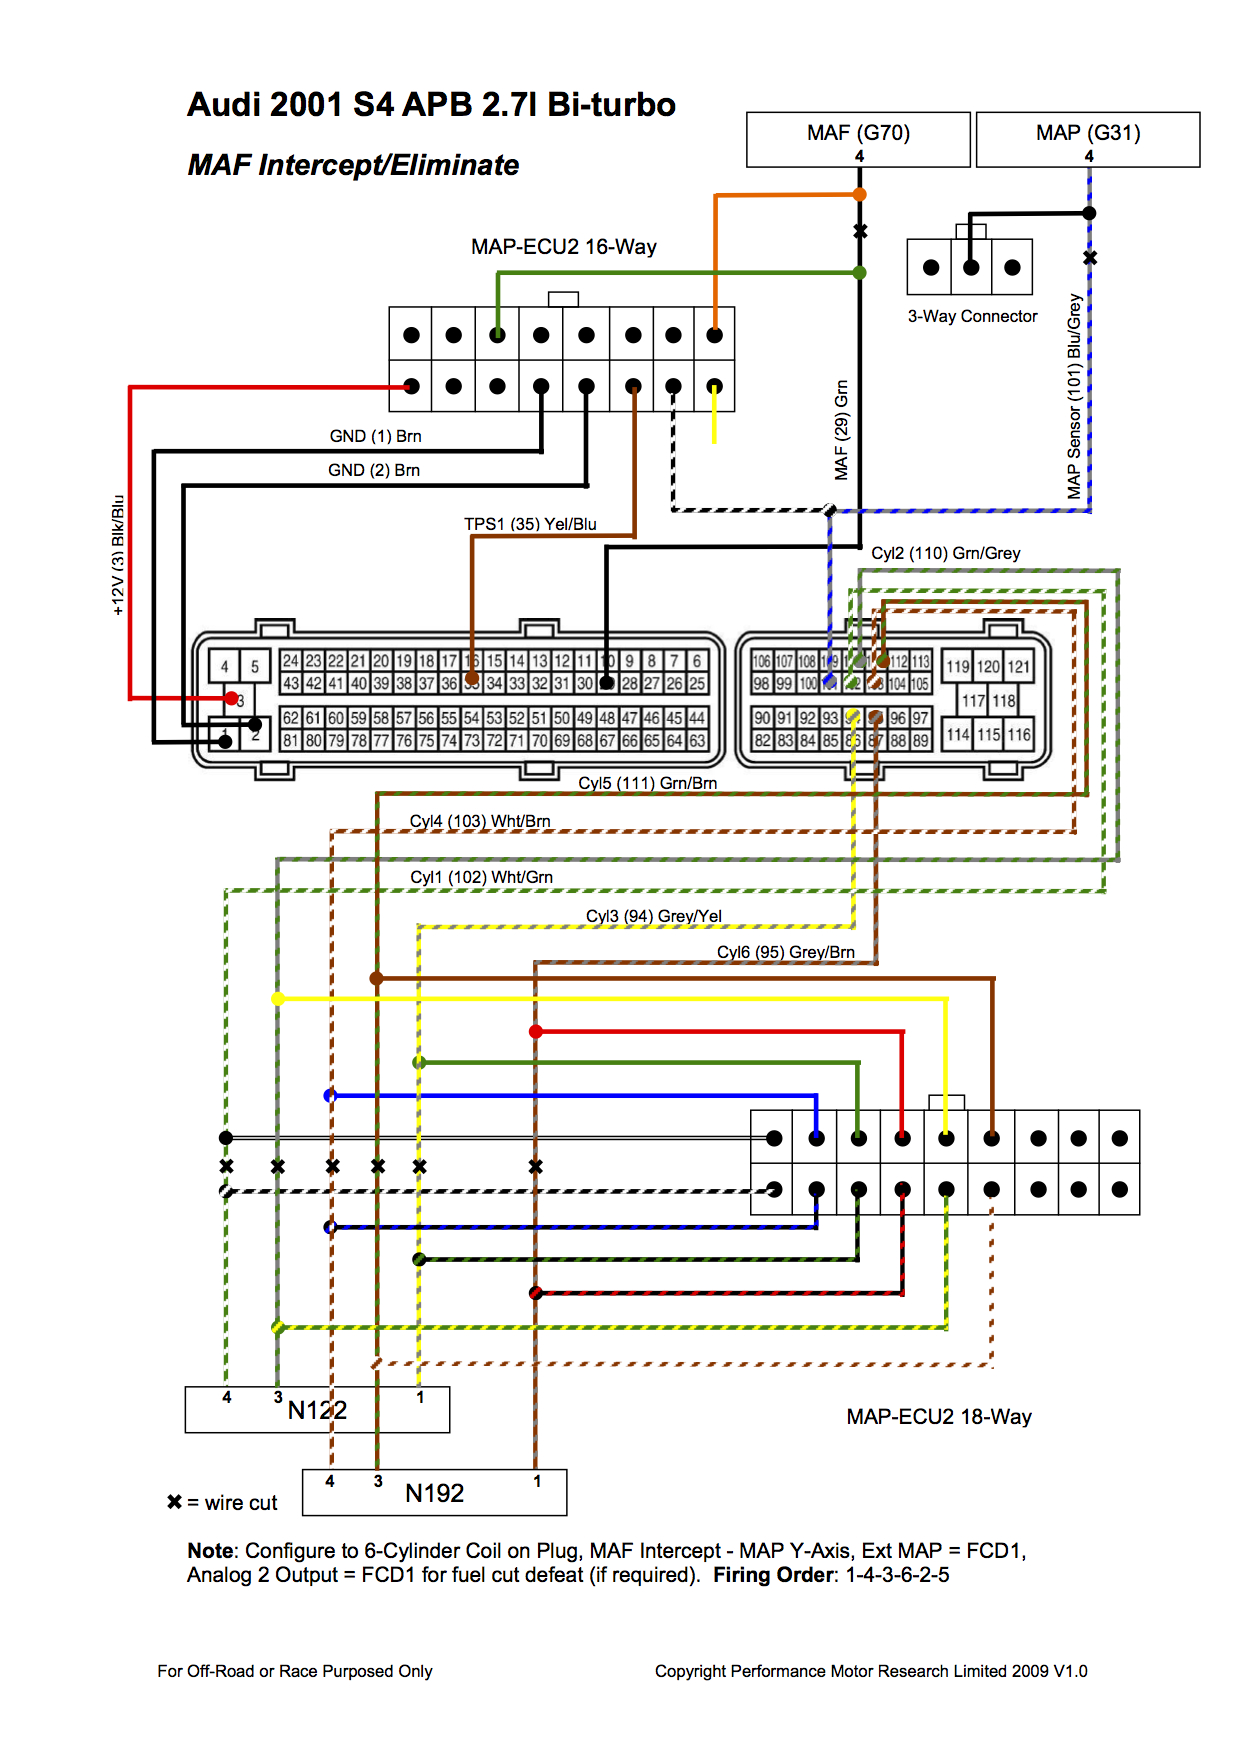 Audi S4 20011 ecu wiring diagram paccar ecu wiring diagram \u2022 wiring diagrams j maruti alto wiring diagram pdf at alyssarenee.co